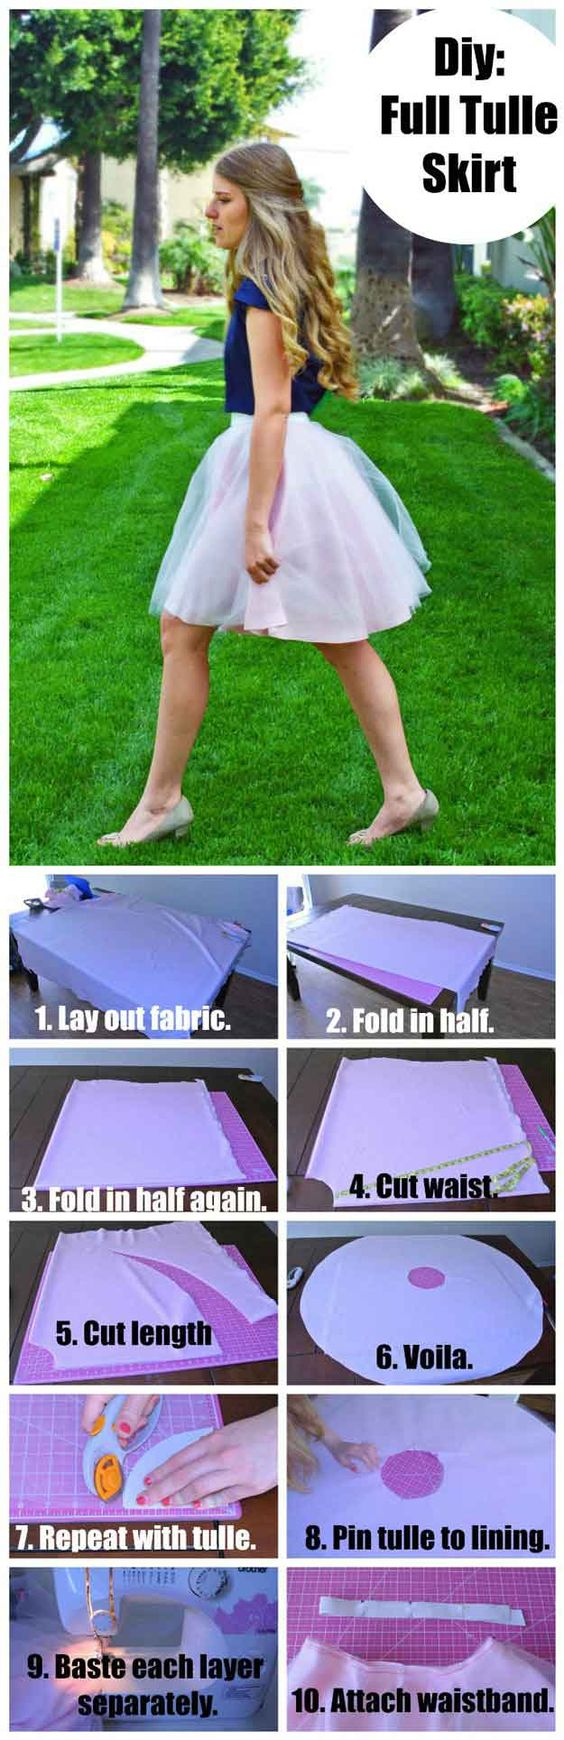 DIY Full Tulle Skirt | DIY Skirts and Pants for Women